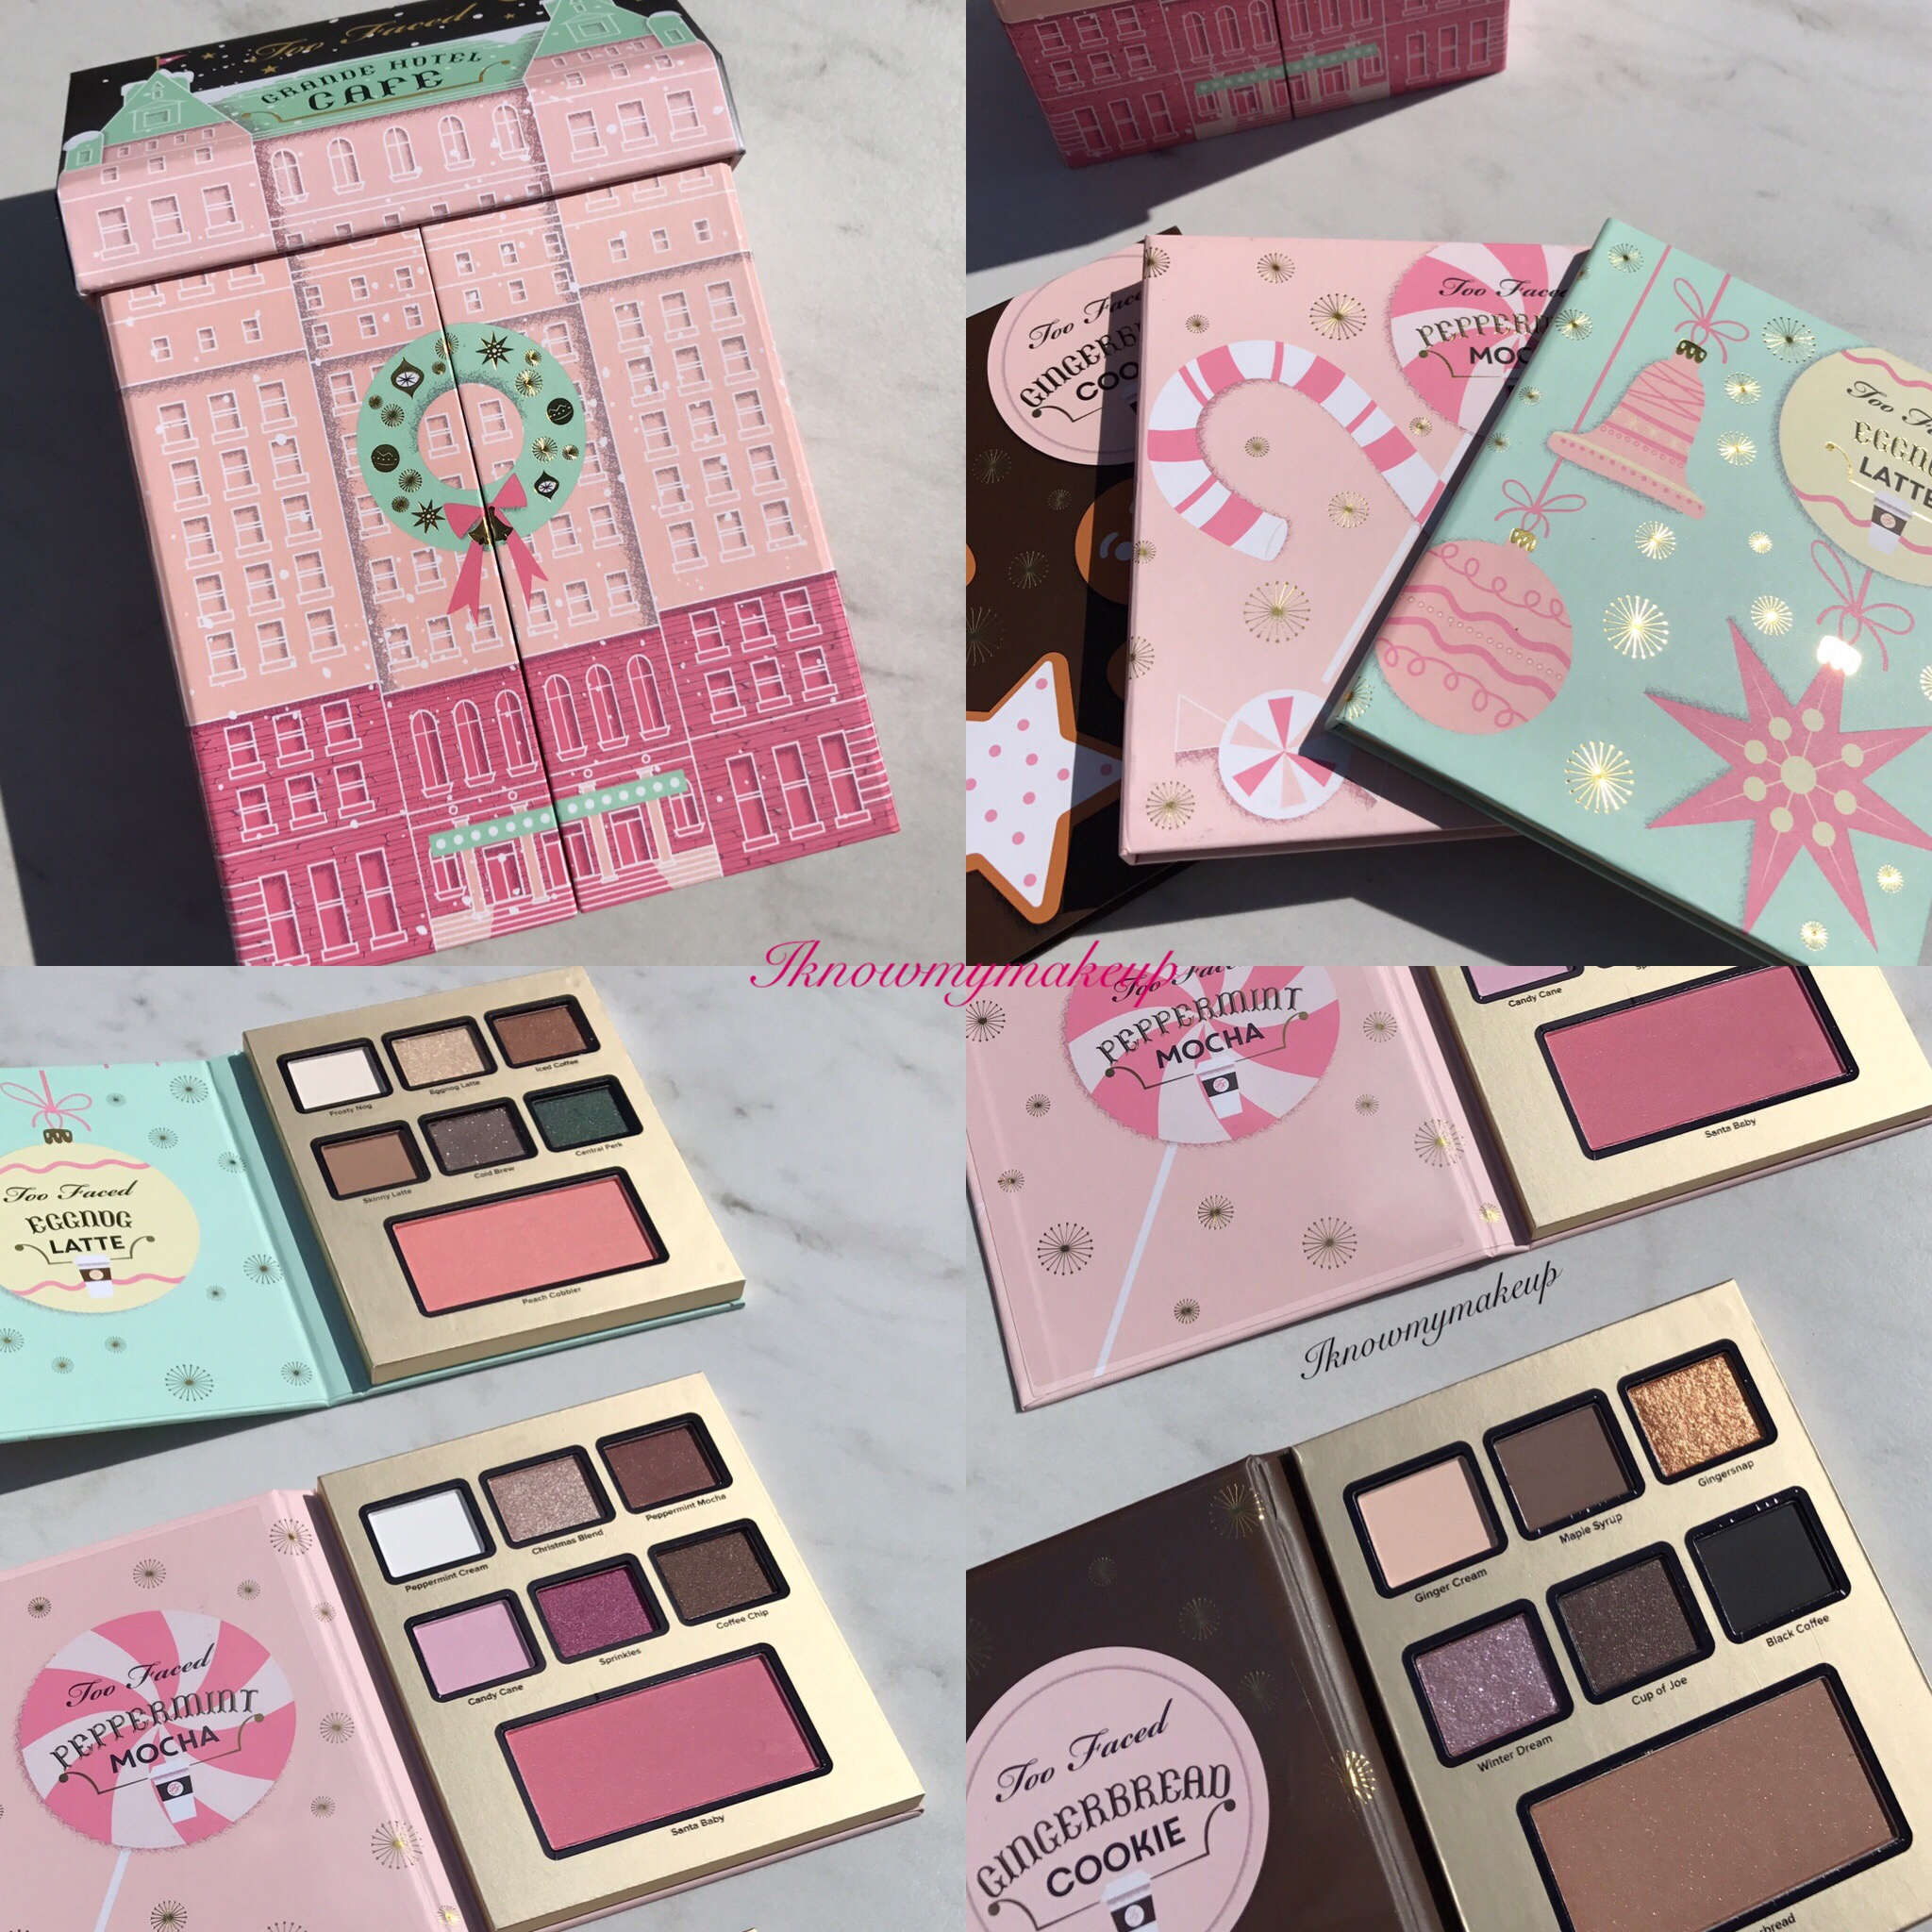 Too Faced Grand Hotel Cafe Holiday Set